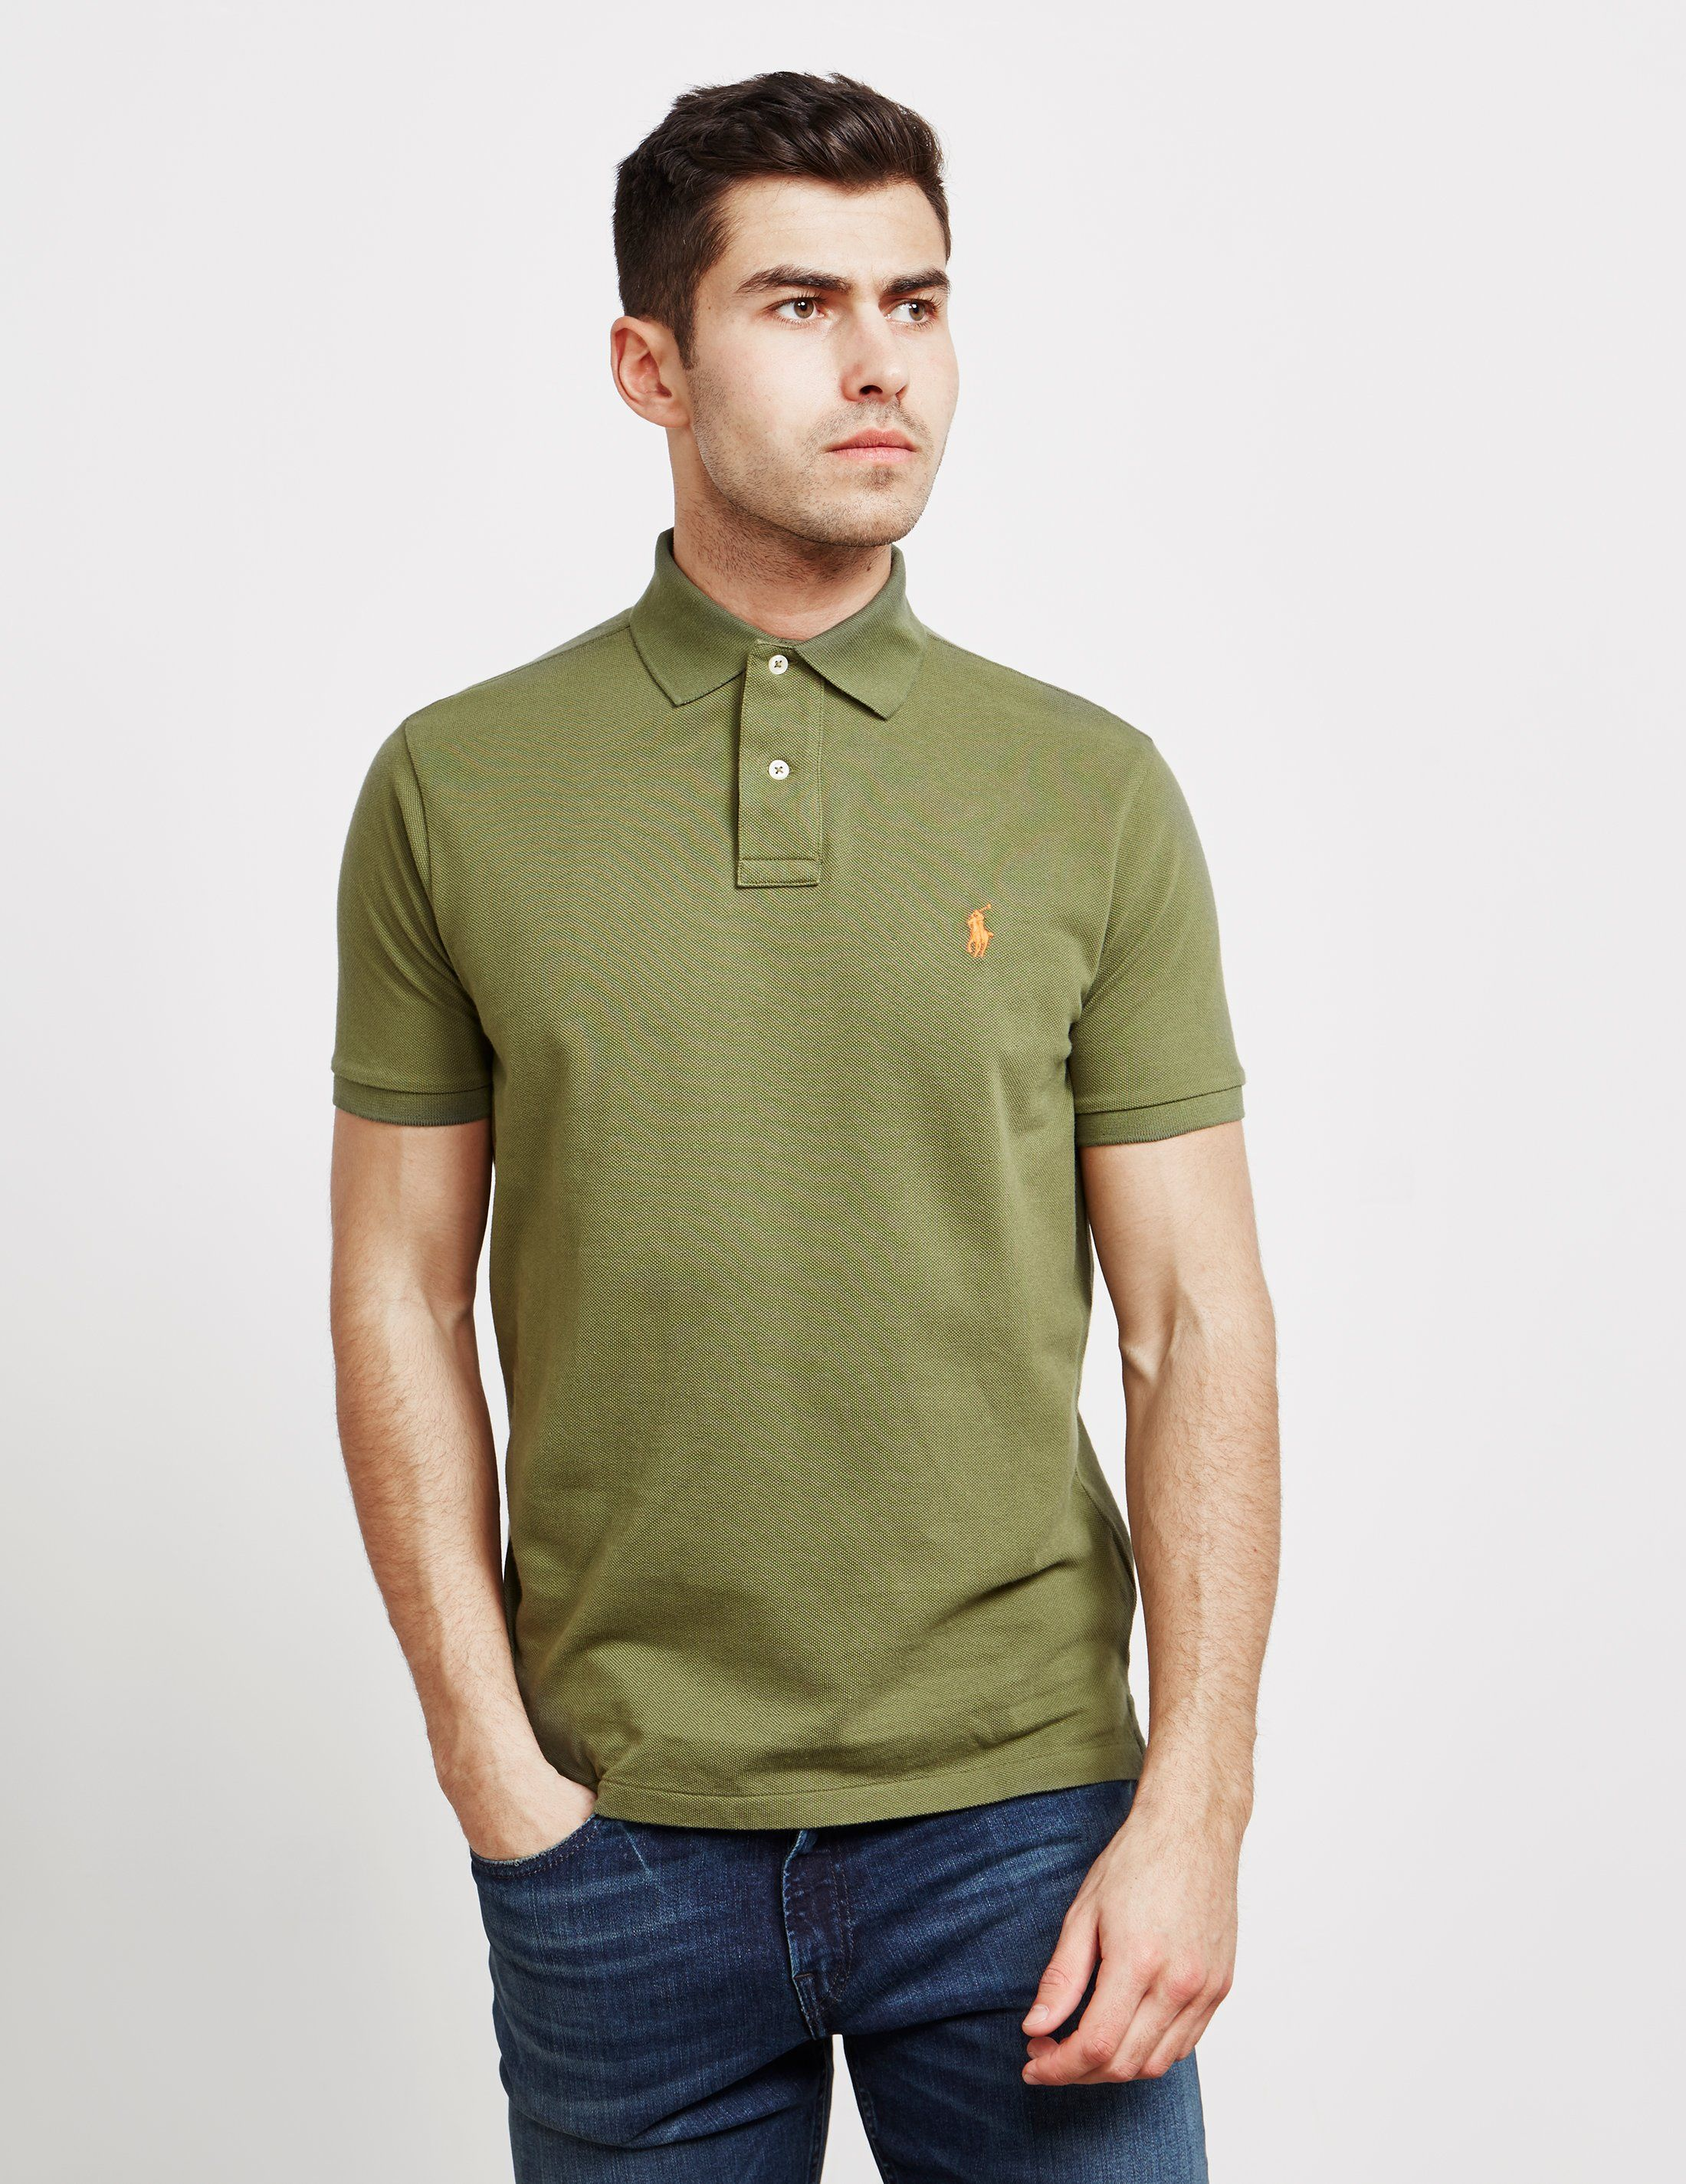 Polo Ralph Lauren Mesh Short Sleeve Polo Shirt